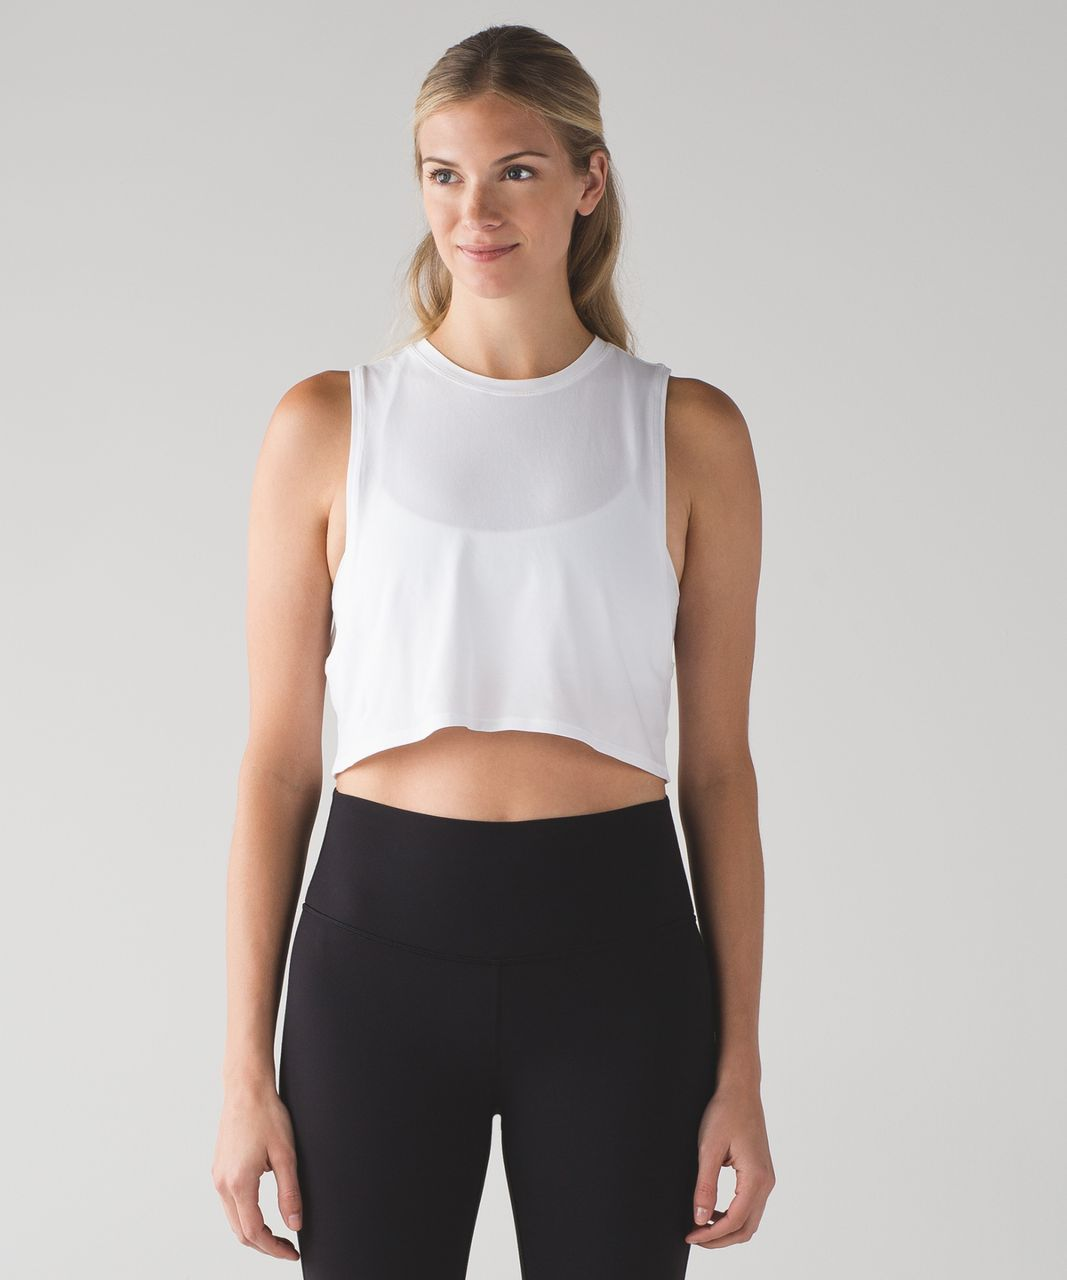 0caa7f48a3bfa Lululemon Muscle Love Crop Tank - White - lulu fanatics